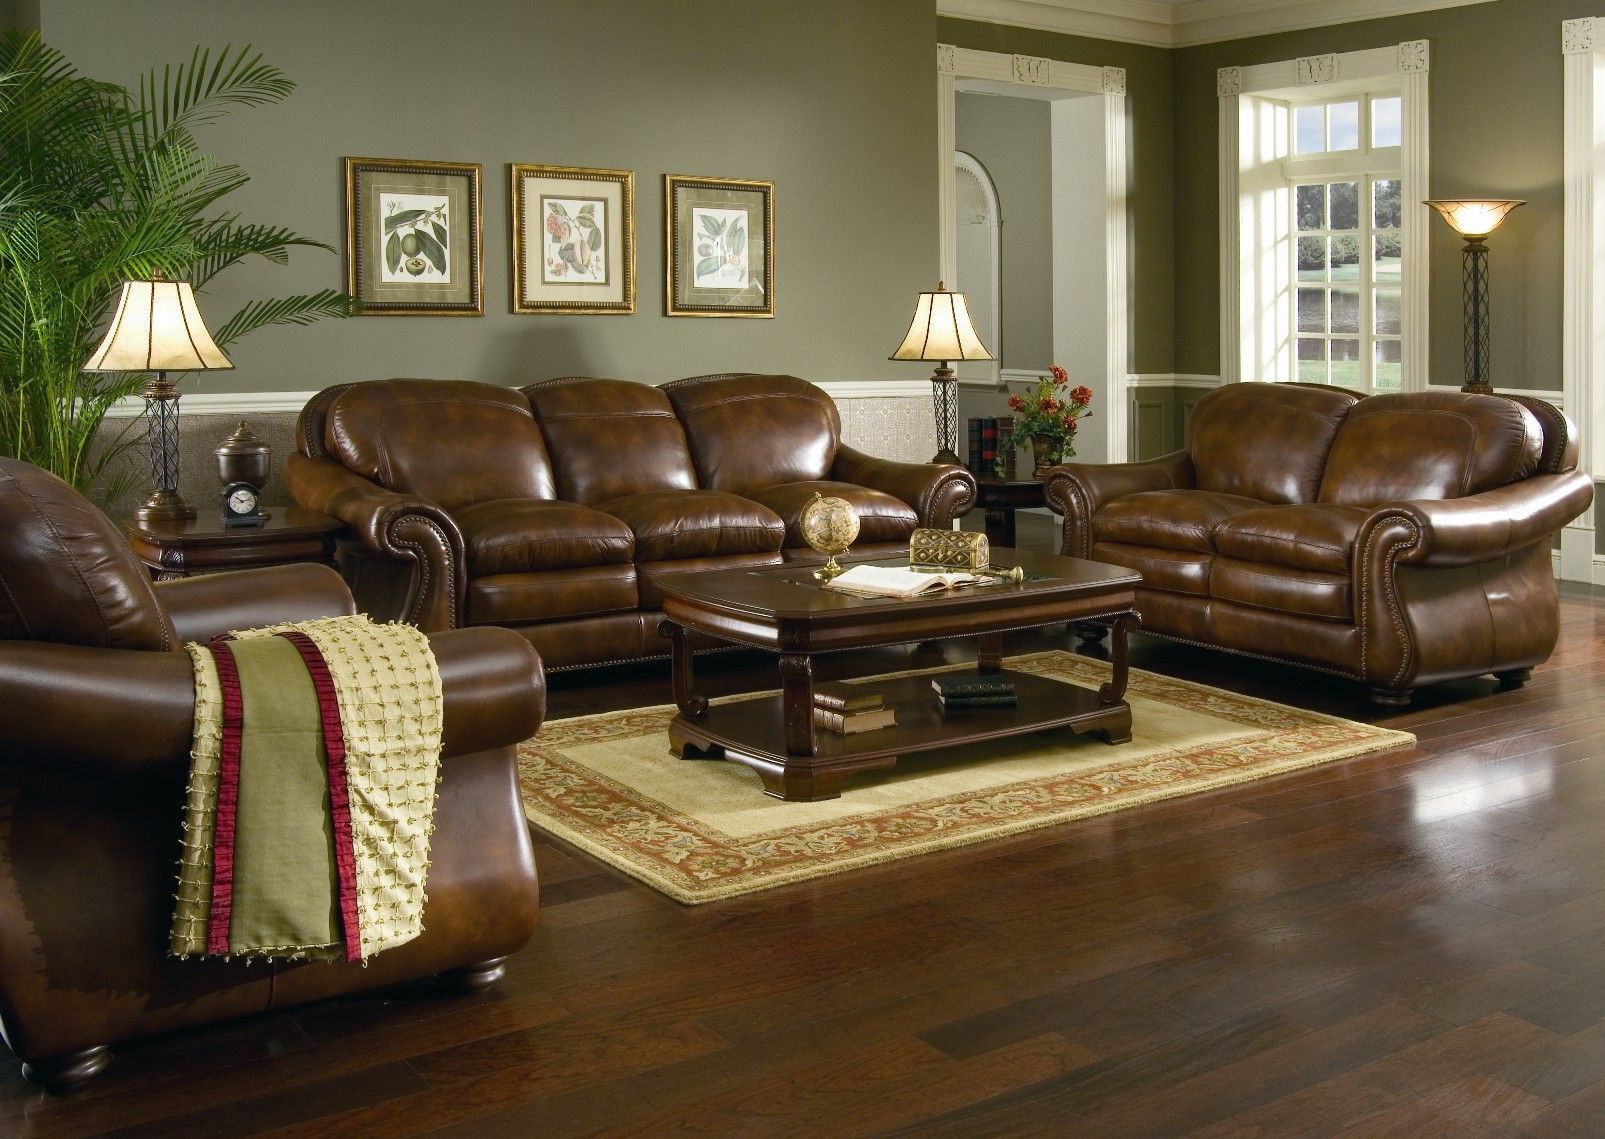 Best Brown Leather Sofa Set For Living Room With Dark Hardwood 640 x 480